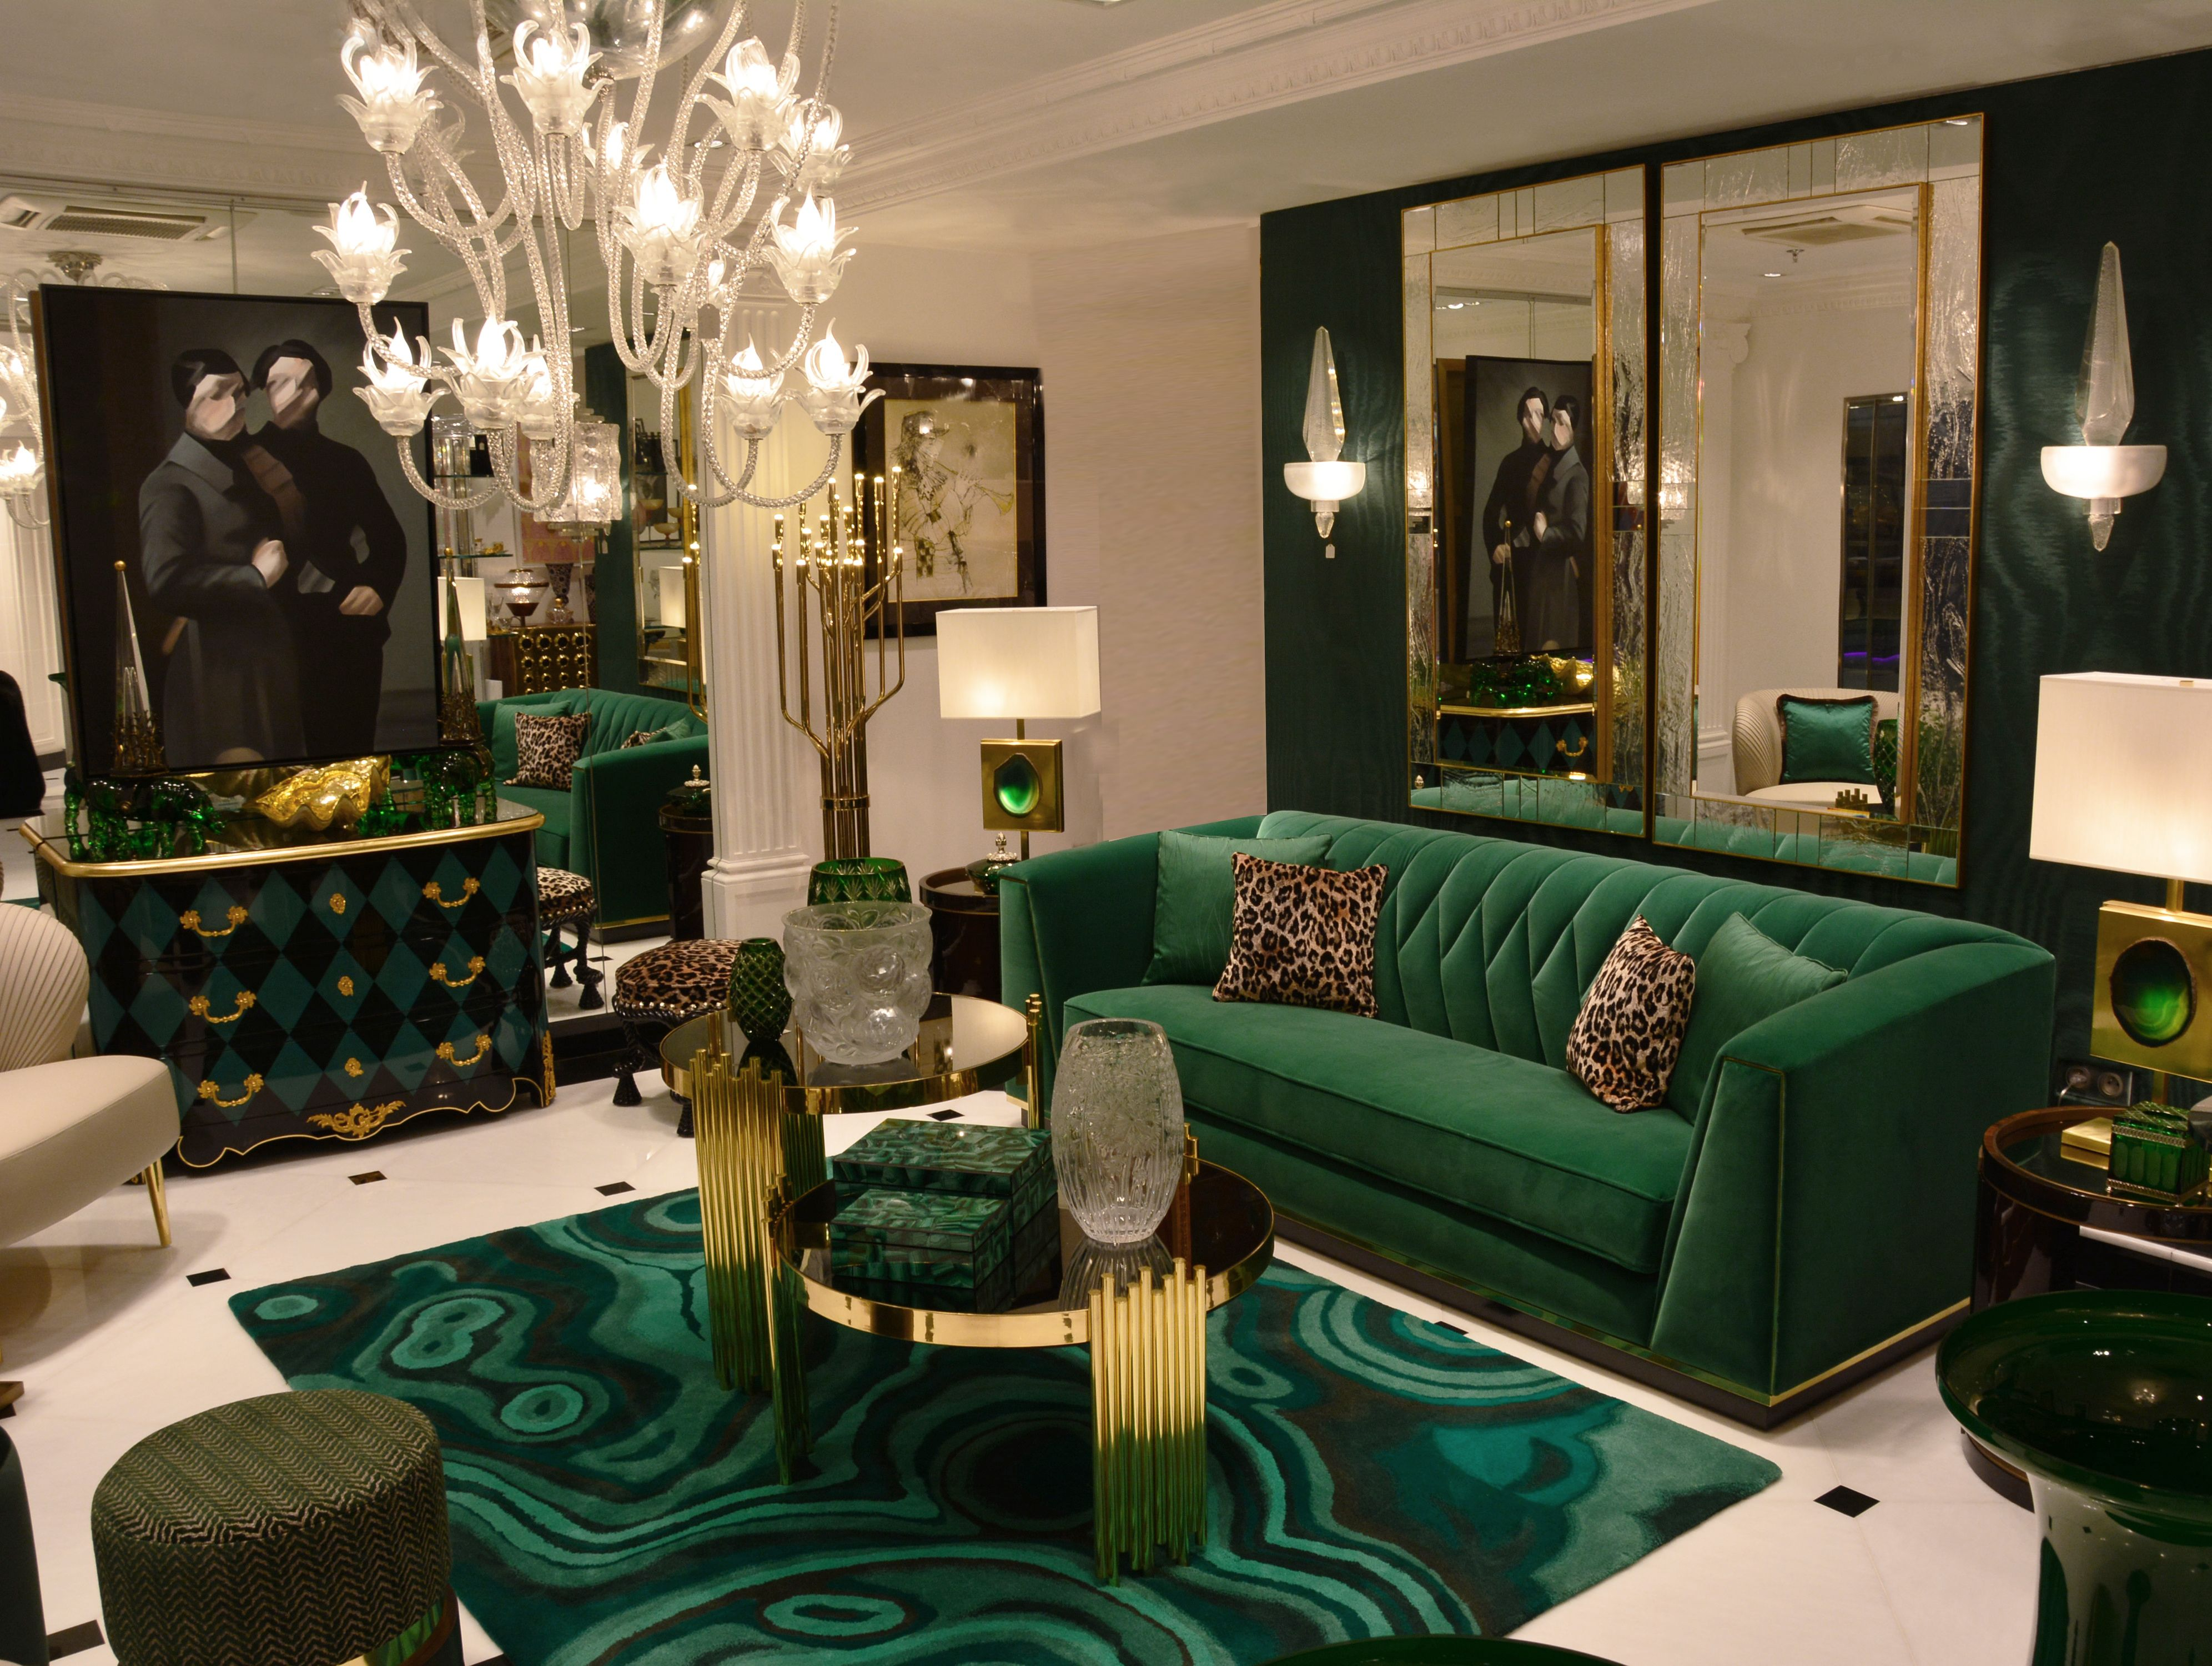 Vitrine Du Showroom Royal Gallery Green Design Velvet Laiton Goldbrass Murano Pinton Inter Gold Living Room Living Room Decor Modern Living Room Green